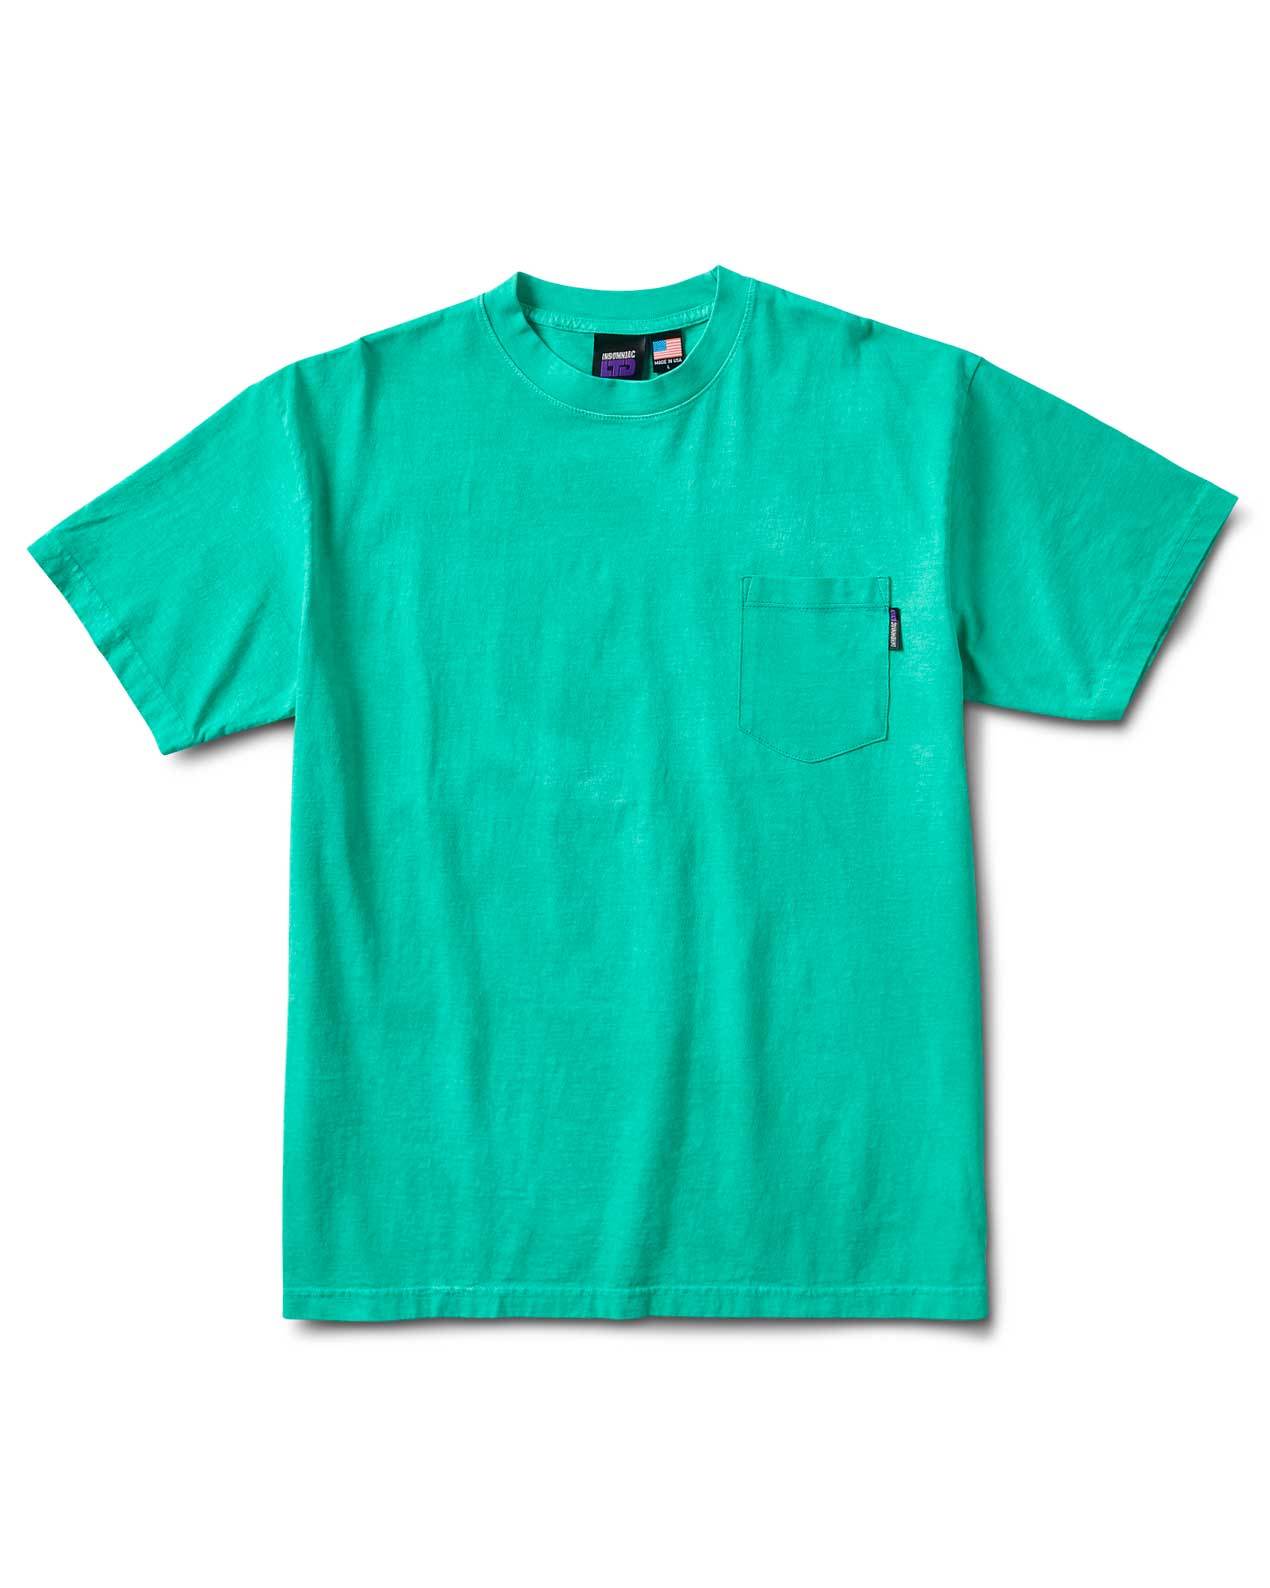 Rb S/S Pocket Tee Green